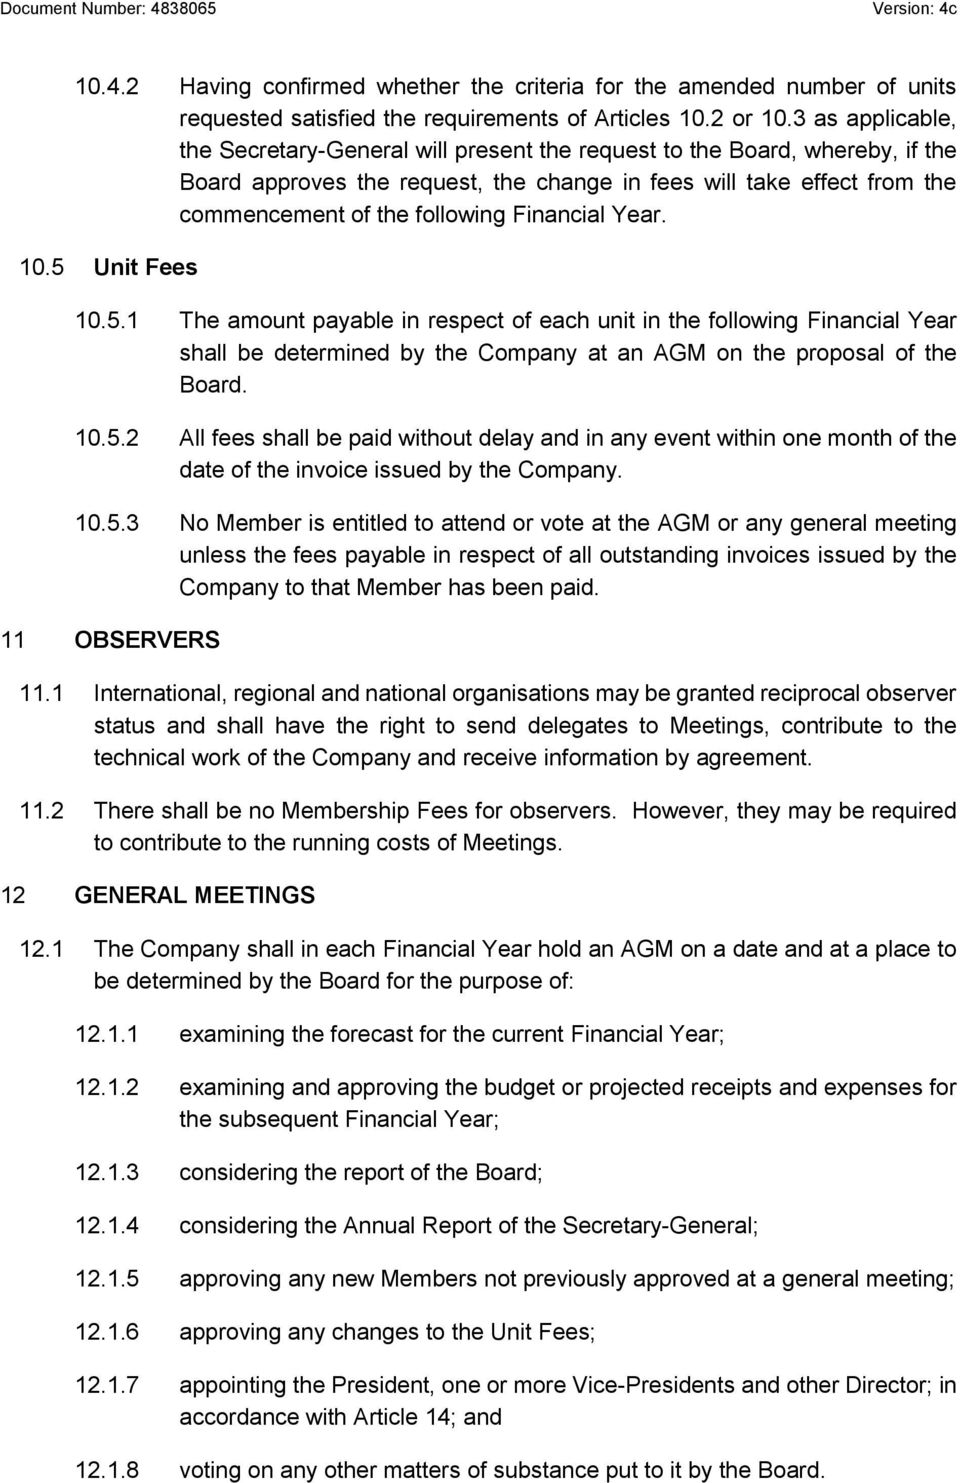 Financial Year. 10.5 Unit Fees 10.5.1 The amount payable in respect of each unit in the following Financial Year shall be determined by the Company at an AGM on the proposal of the Board. 10.5.2 All fees shall be paid without delay and in any event within one month of the date of the invoice issued by the Company.